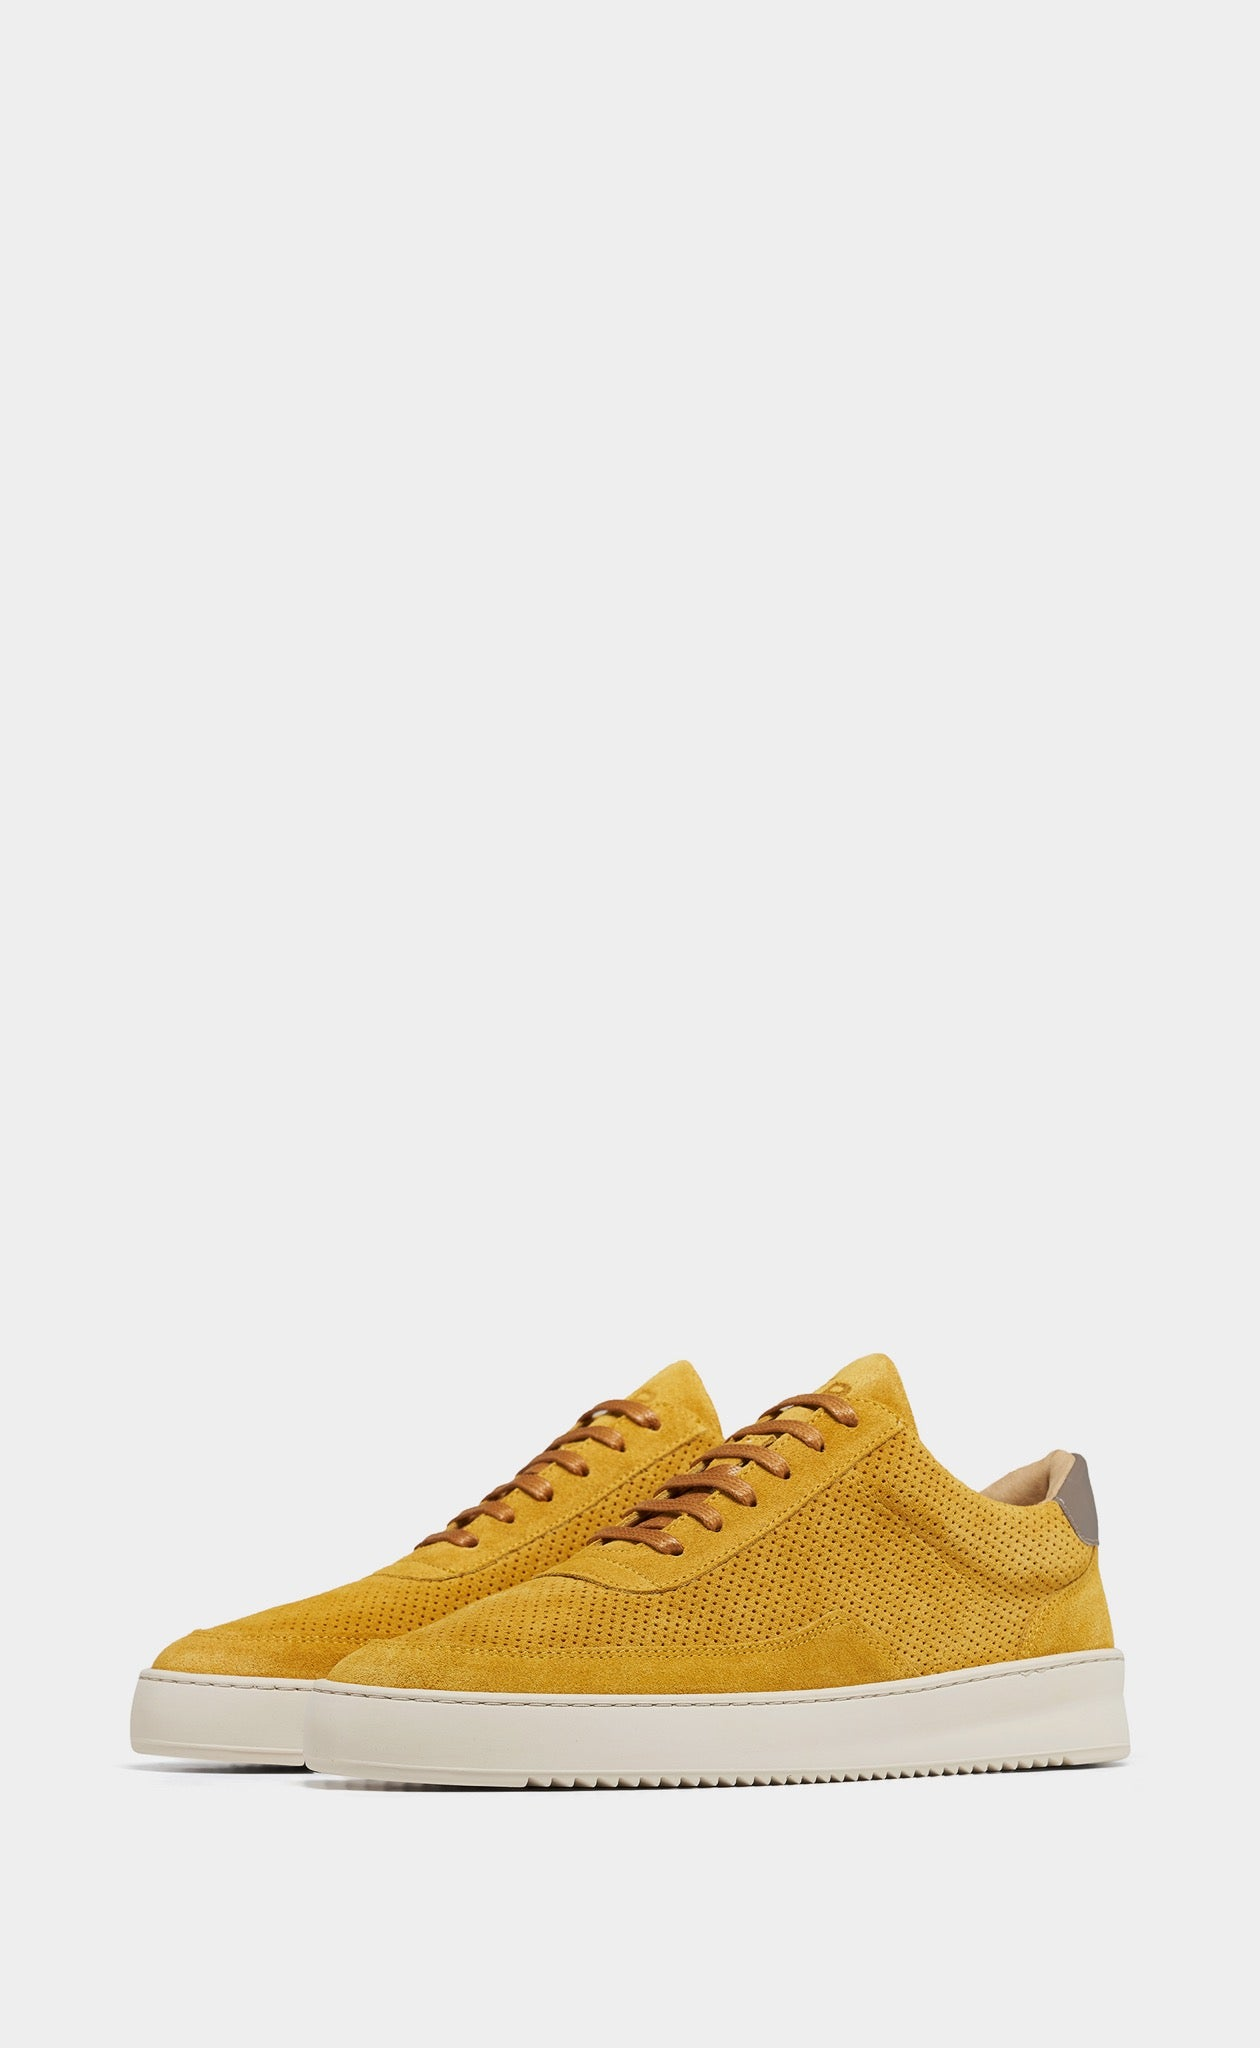 Low Mondo Ripple Suede Perforated Mustard